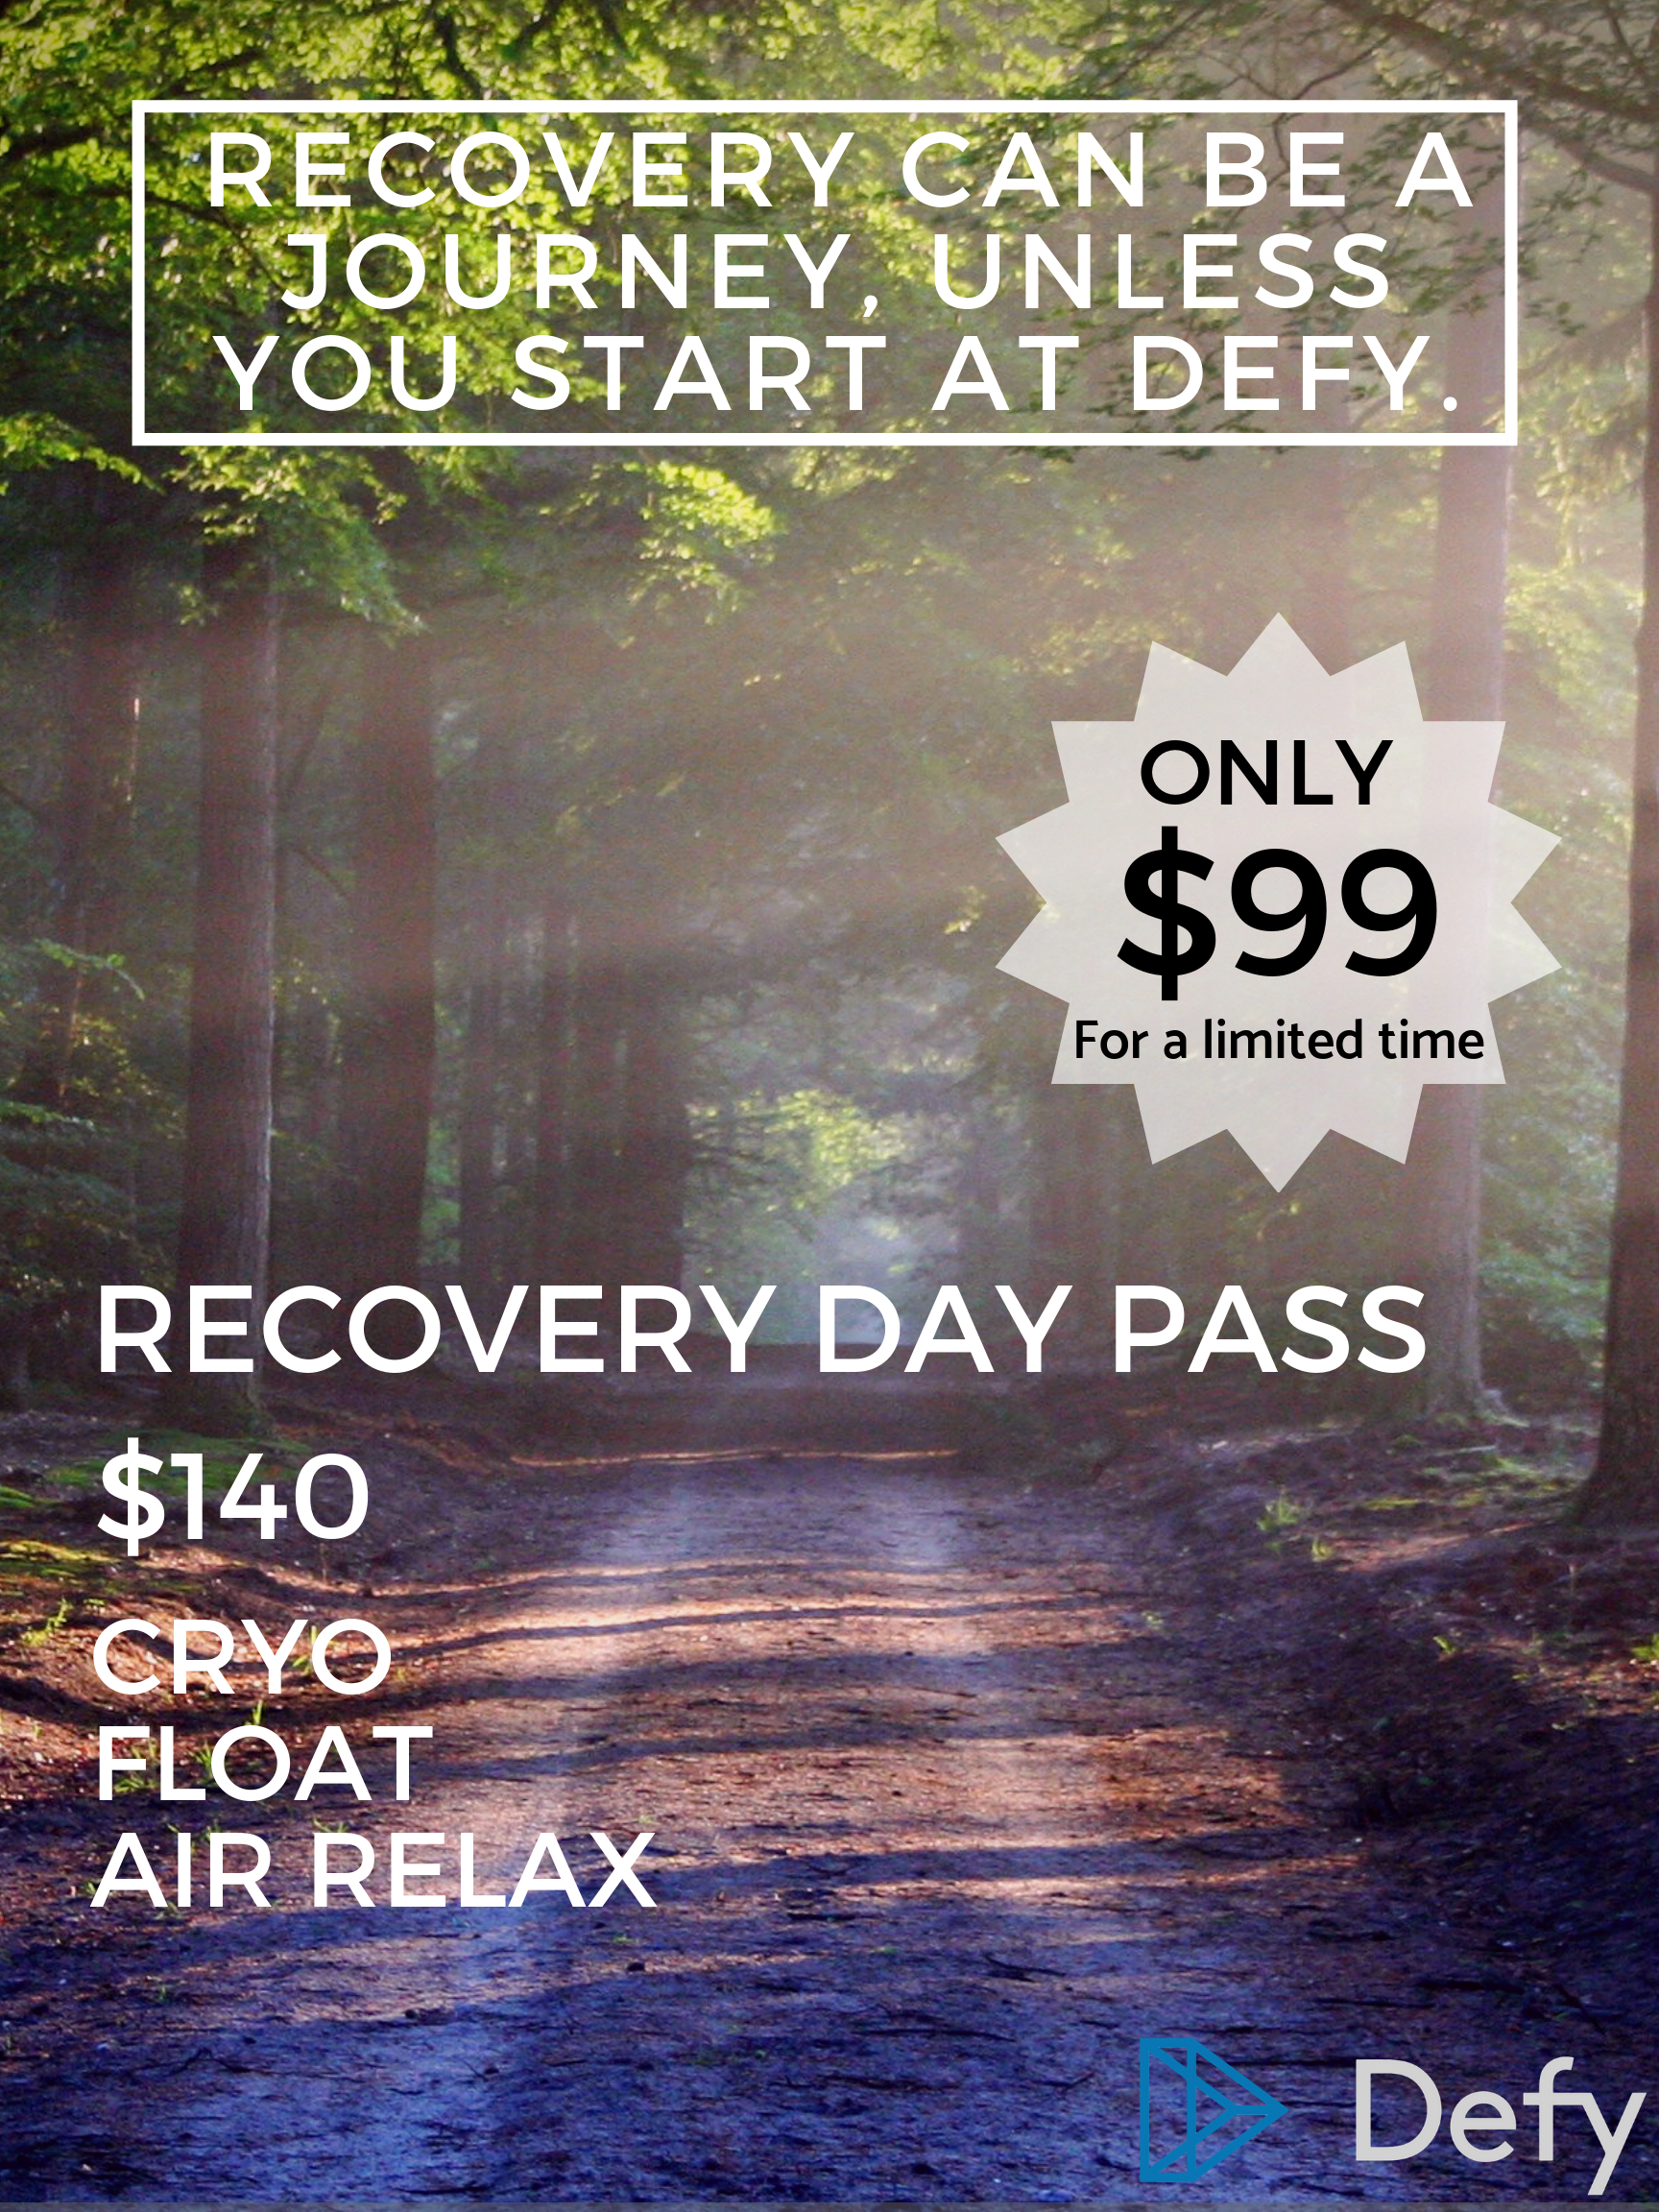 Recovery Day Pass Website $99 offer.png